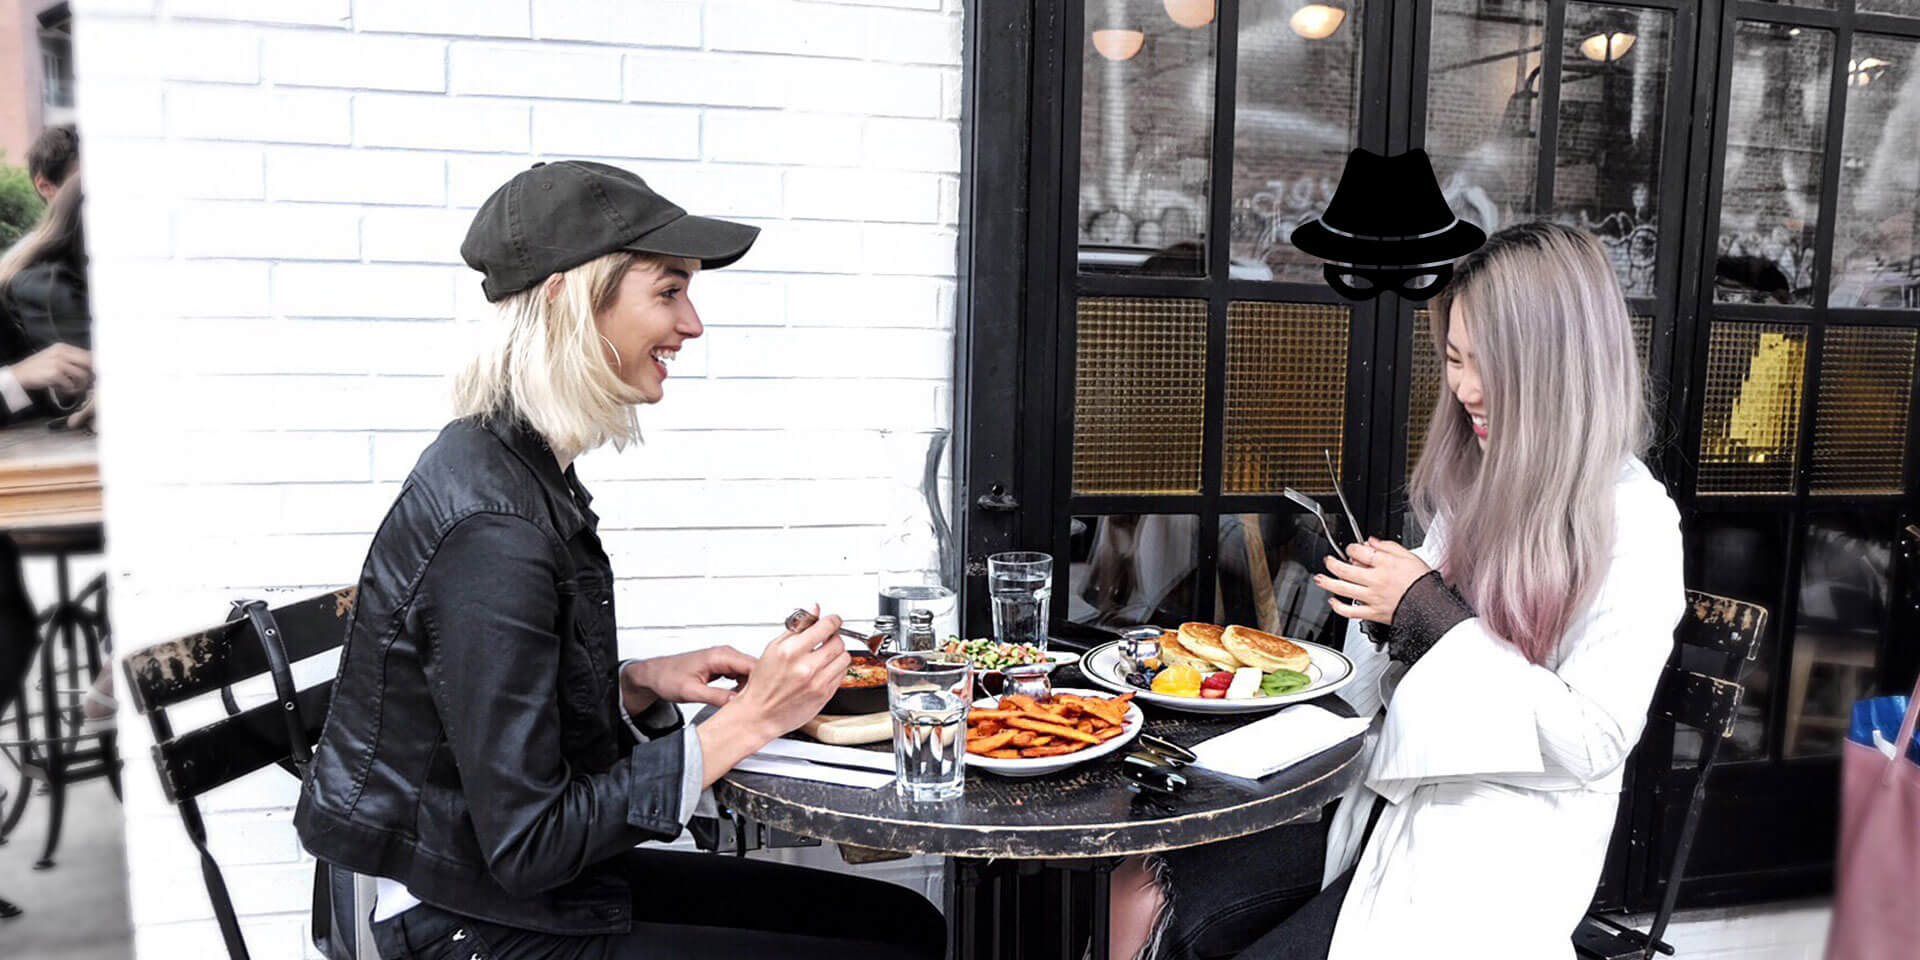 Increase omni-channel engagement in your restaurant with these 4 ideas